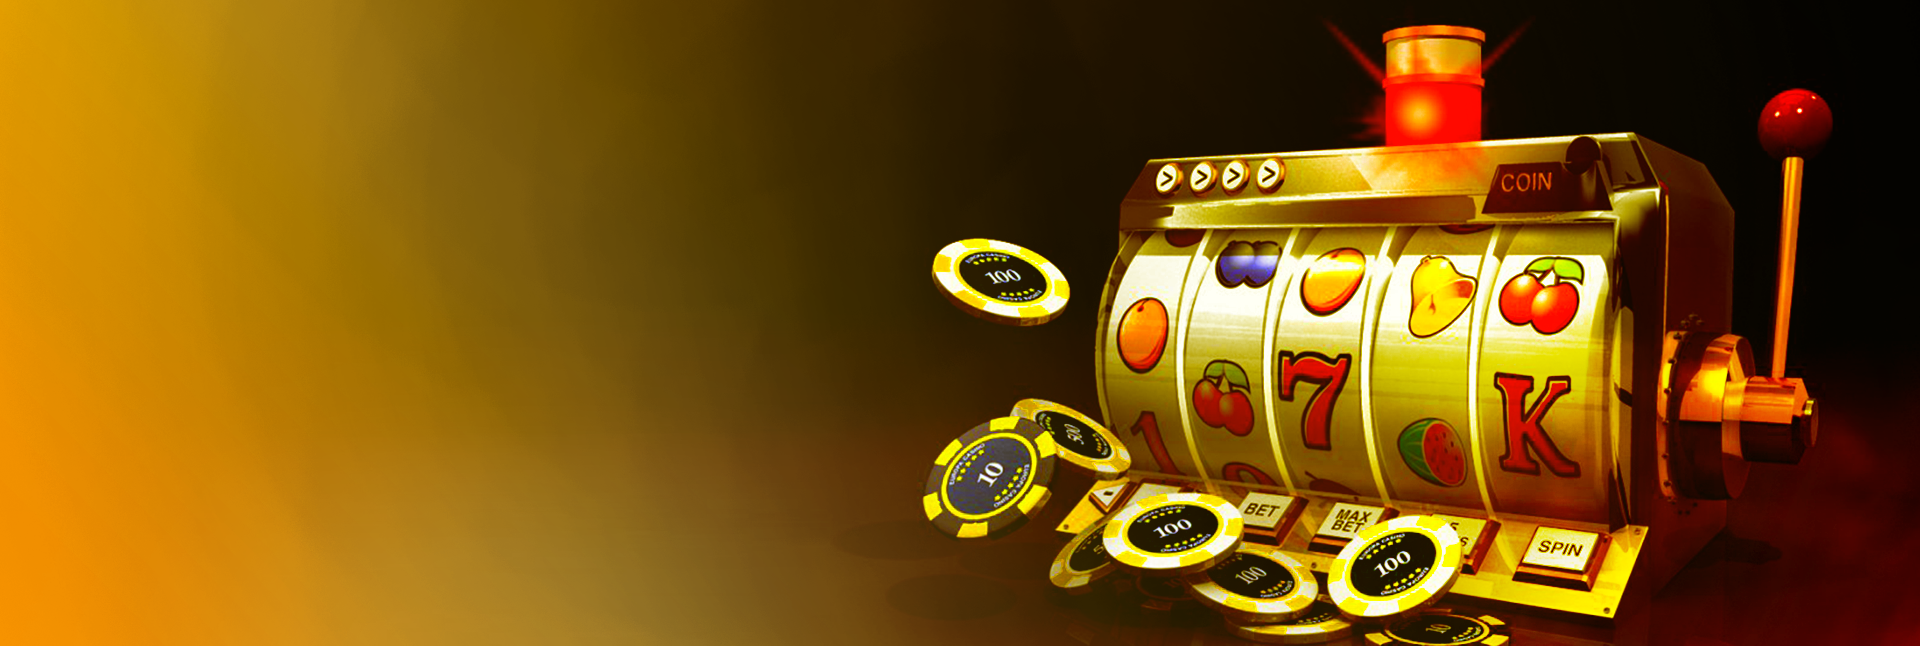 Jackpot wheel casino login